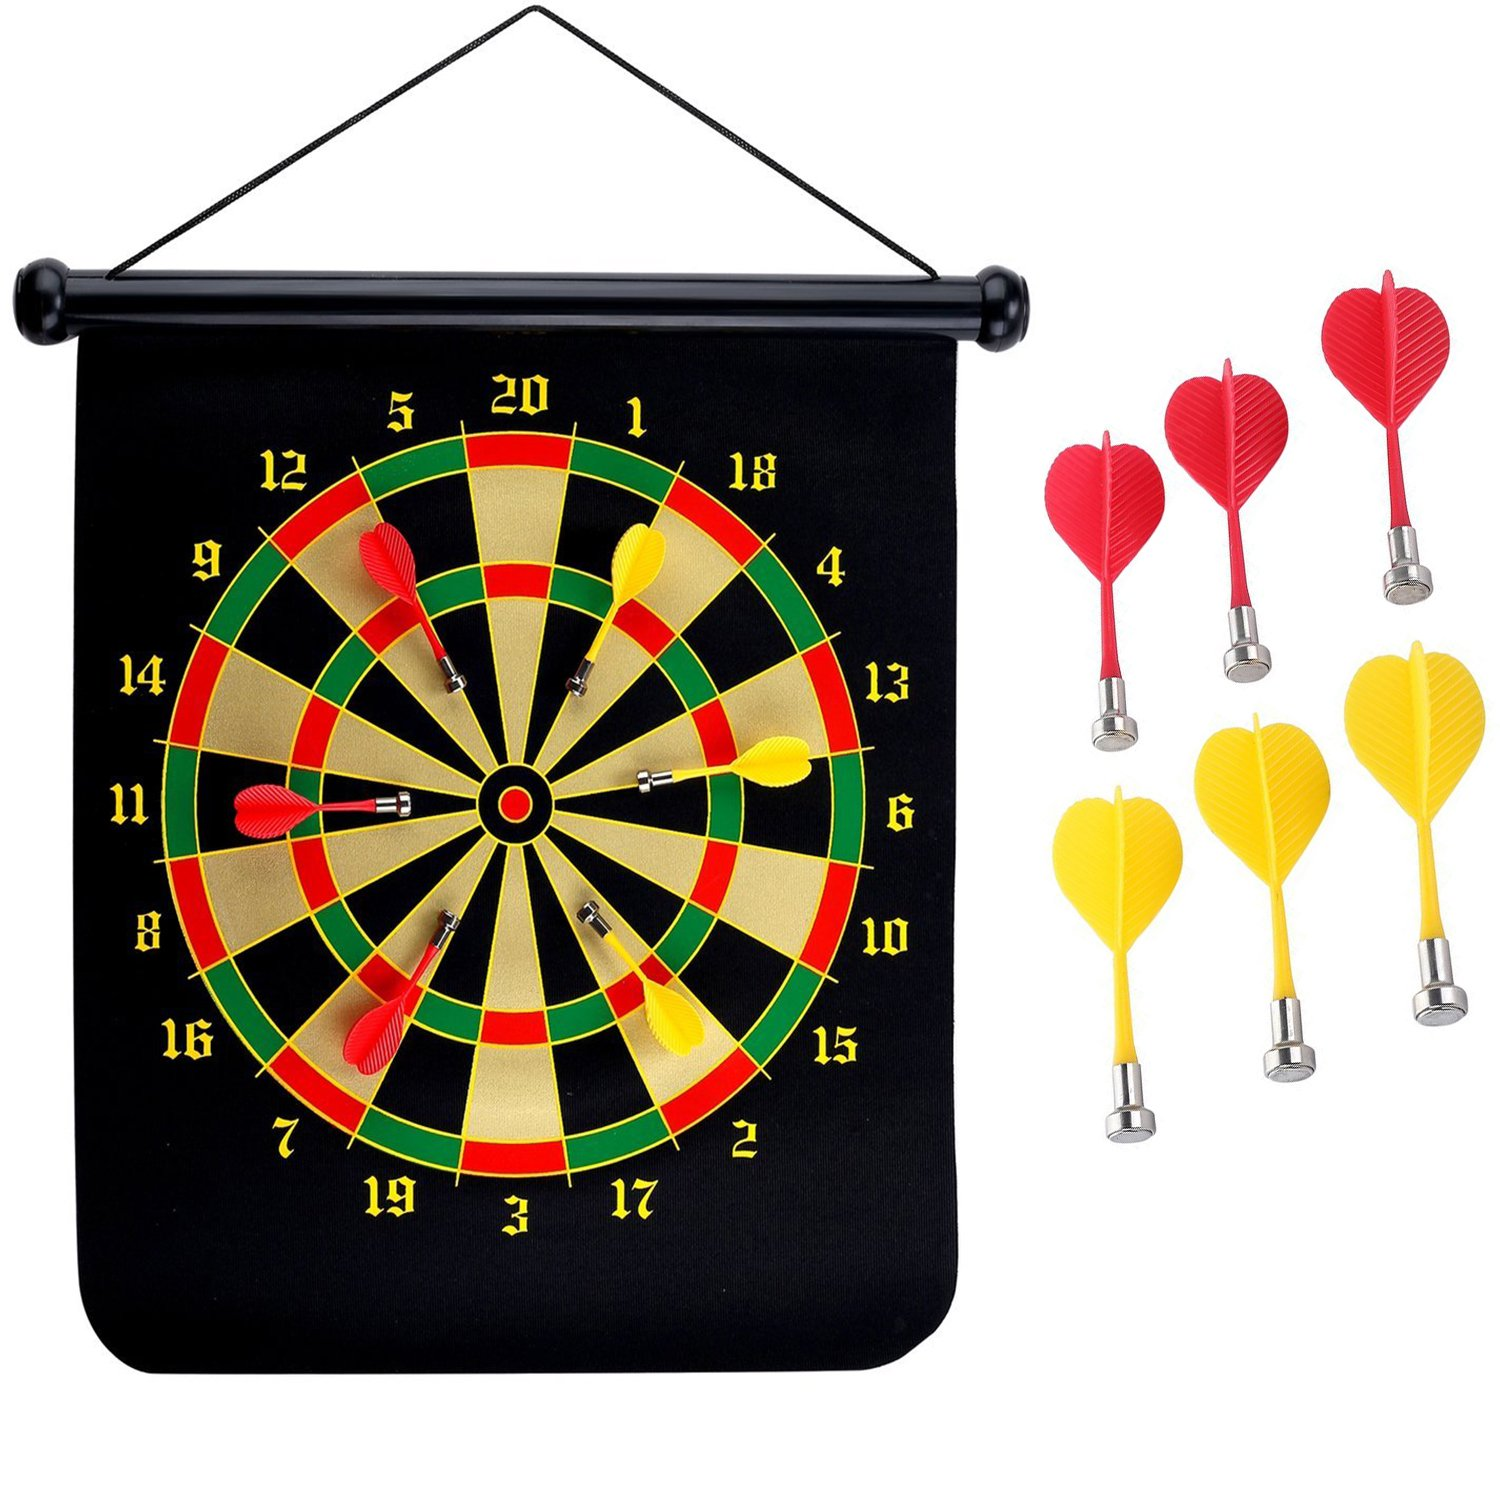 MANSHU 15 inches Magnetic Dart Board Double Sided Hanging Dart Board Set Bullseye Game!